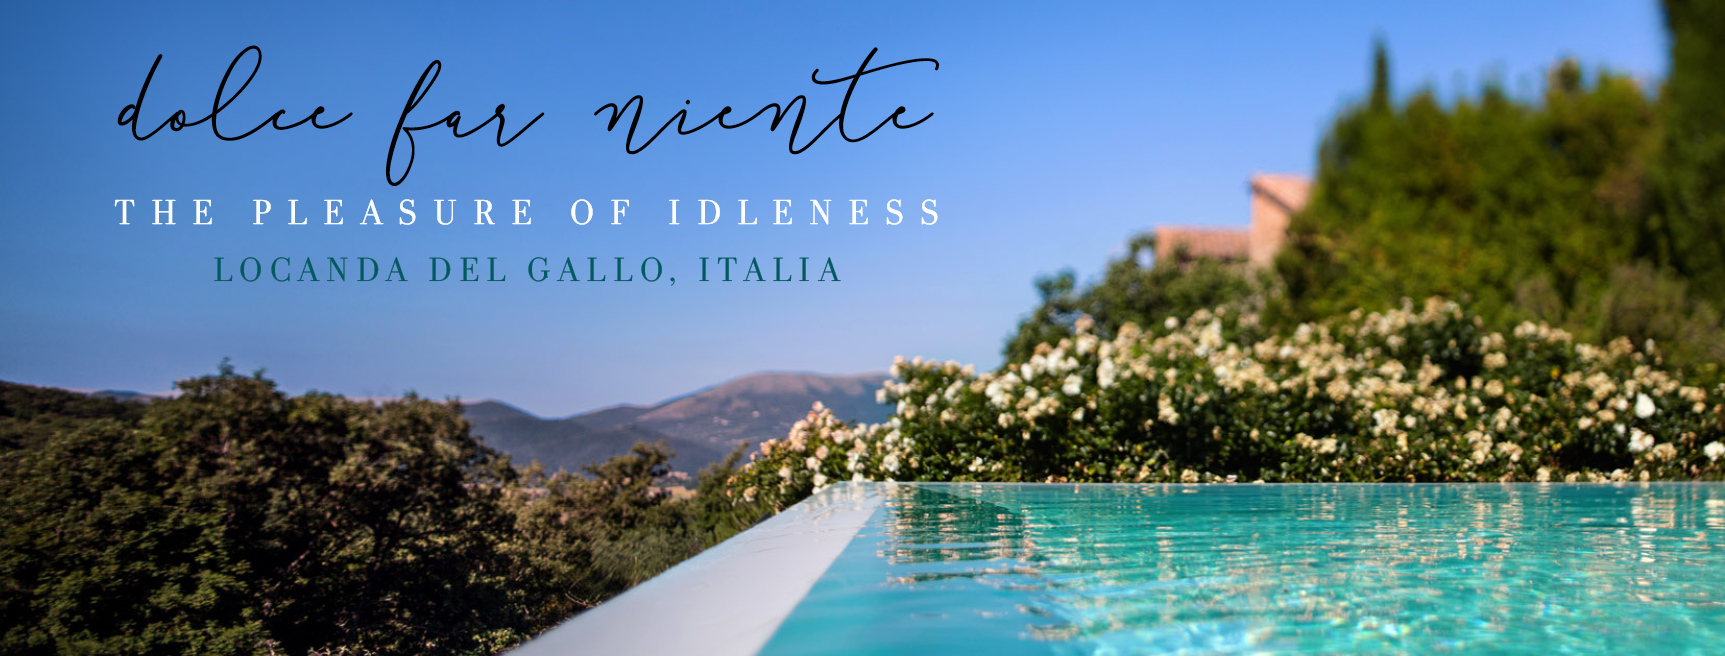 moyo1137-Italy Retreat Header